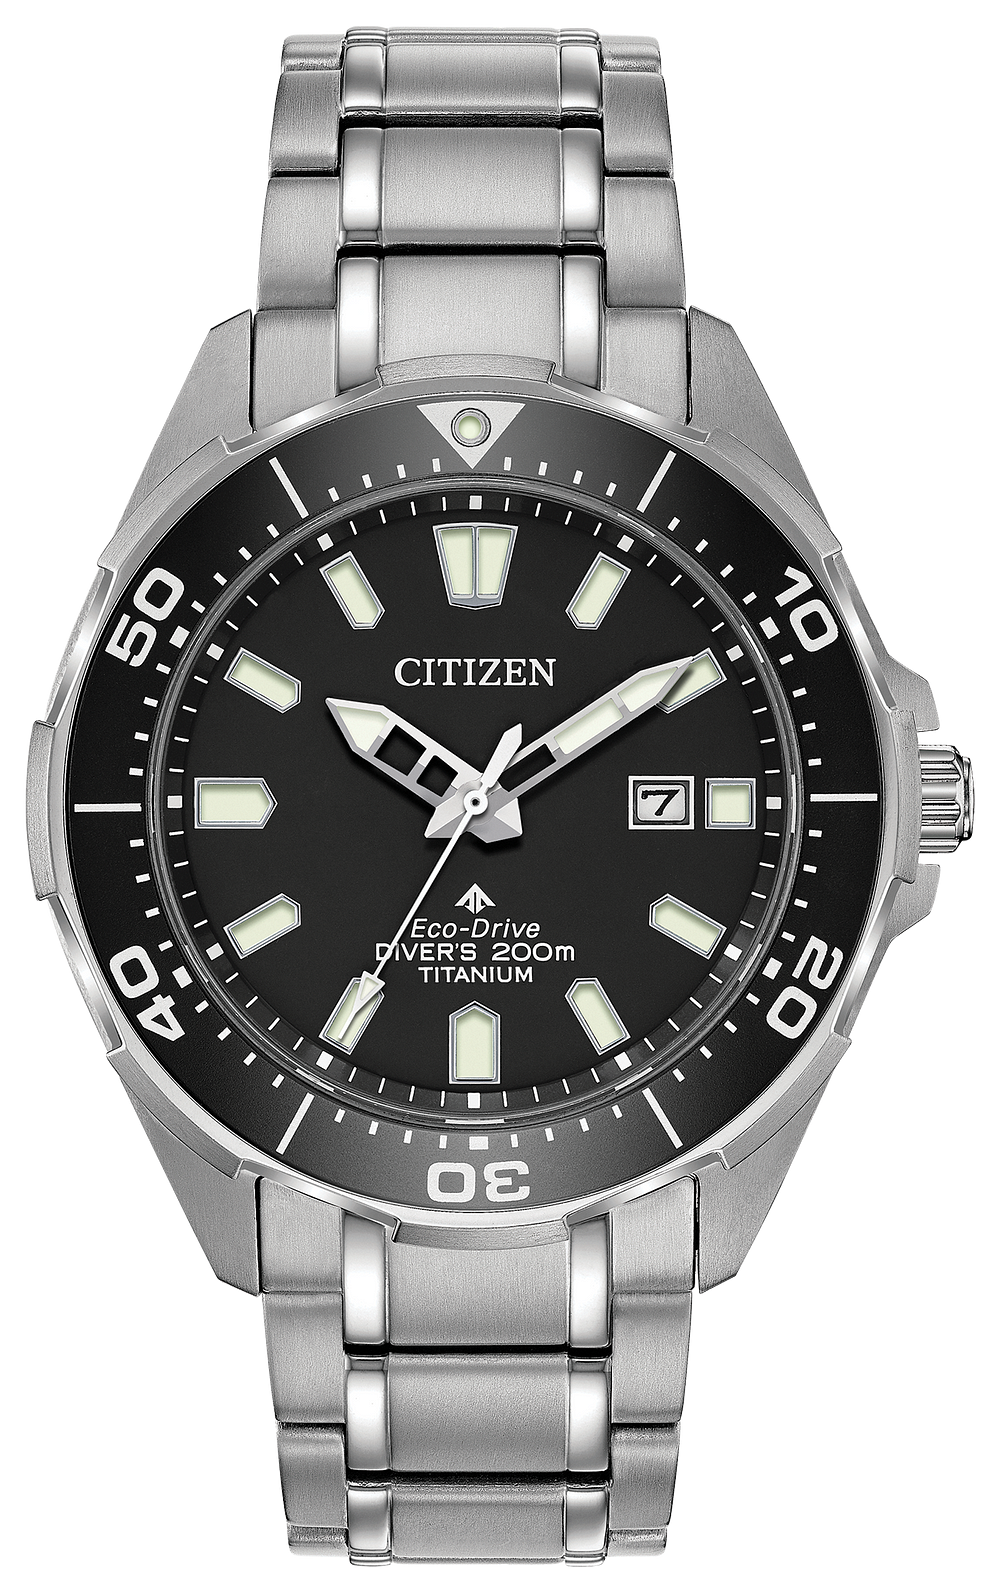 Promaster diver men 39 s eco drive bn0200 56e steel watch citizen for Under water watches